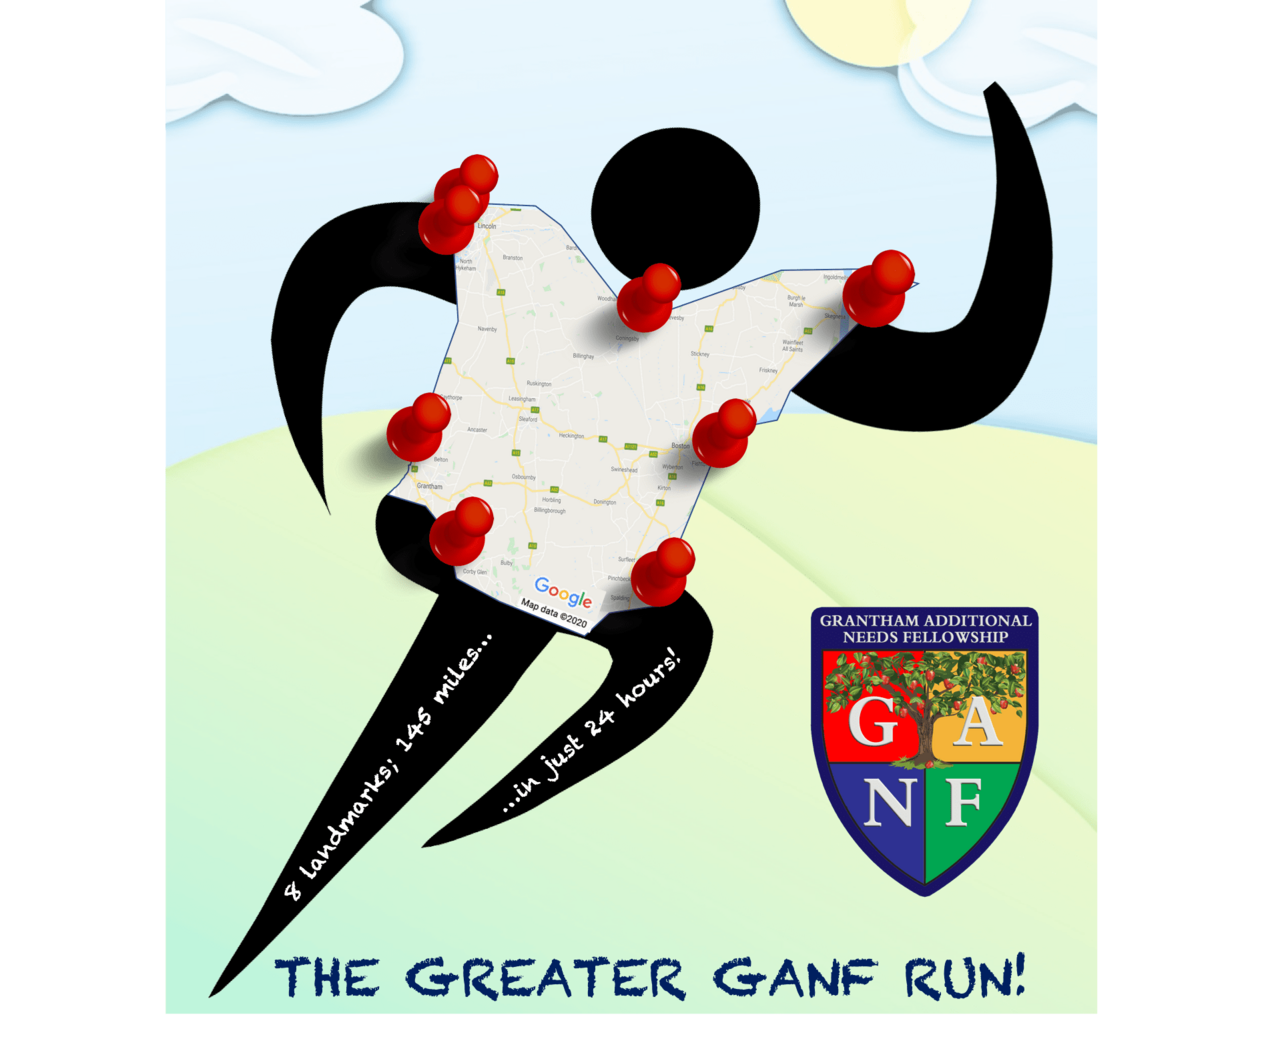 8 landmarks, 145 miles, 24 hours: The Greater GANF Run!